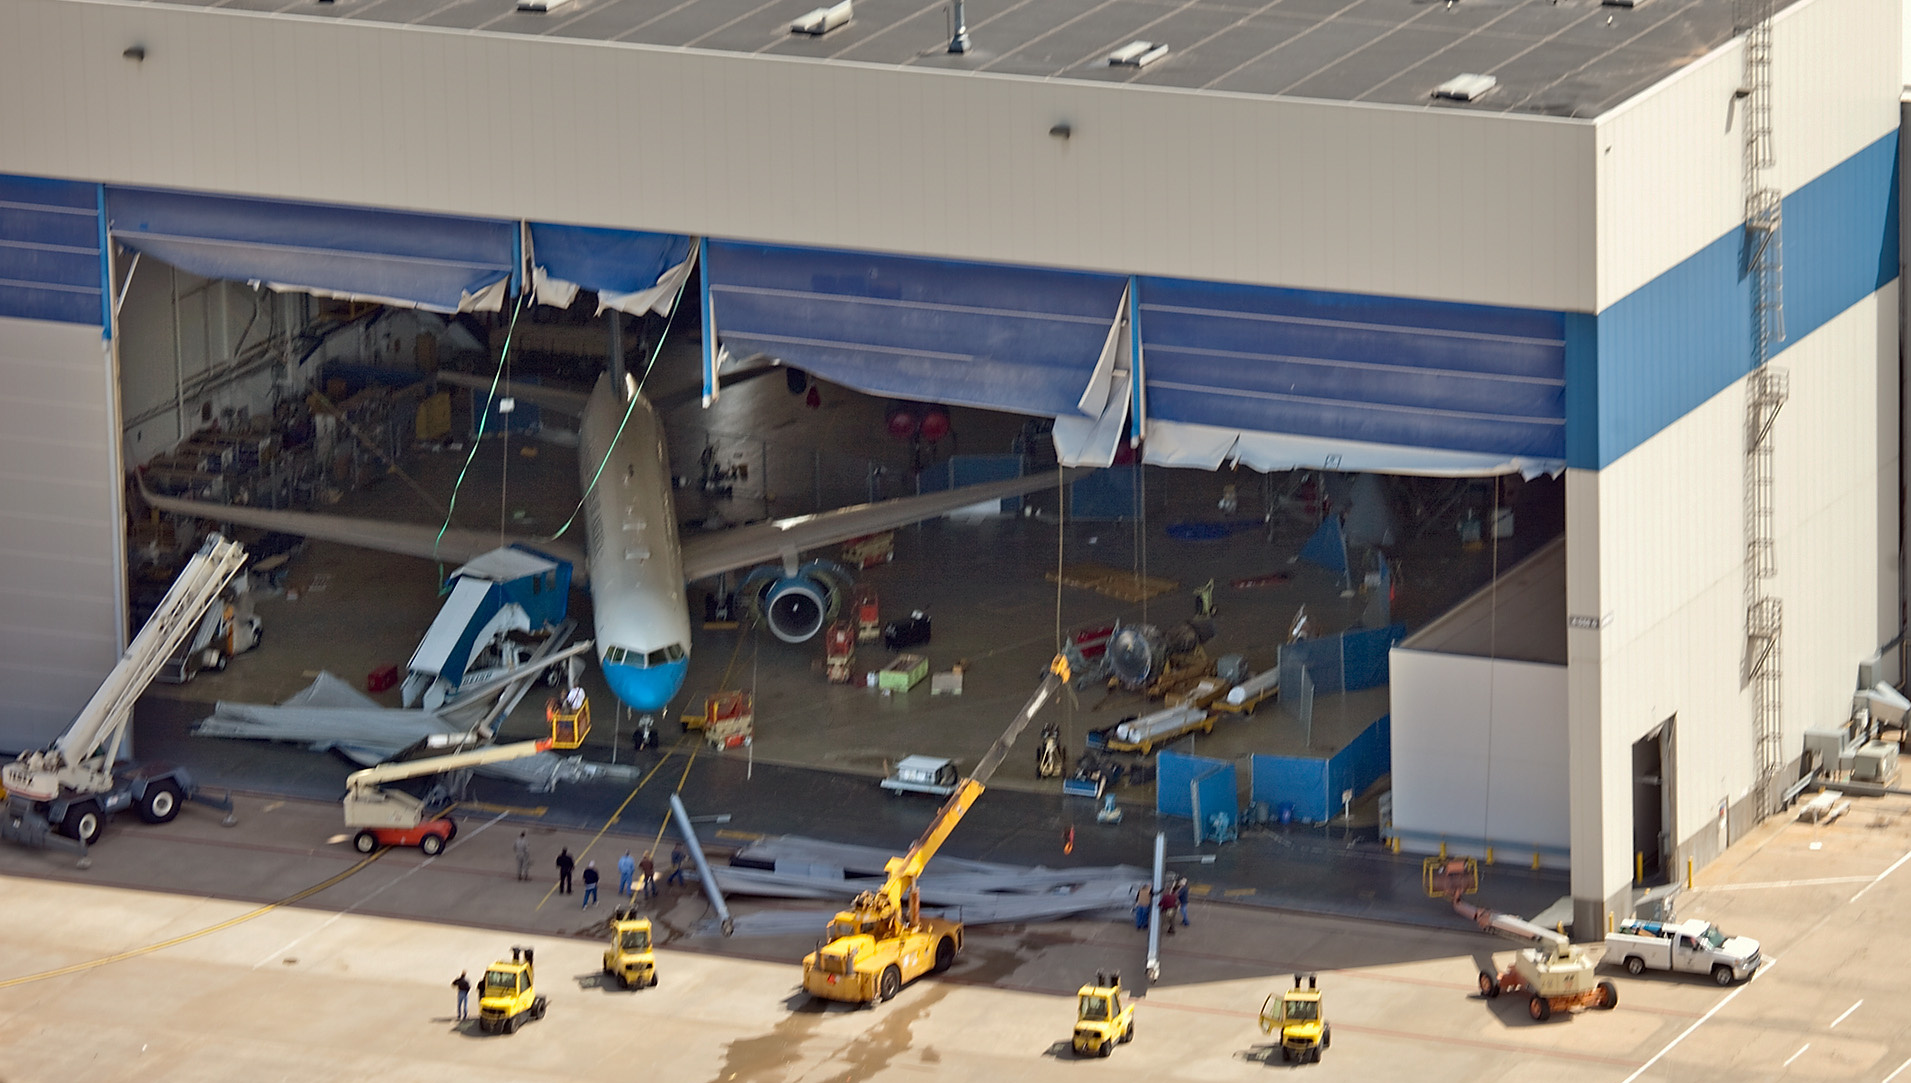 Tornado Damage Puts Aircraft Industry On Hold The